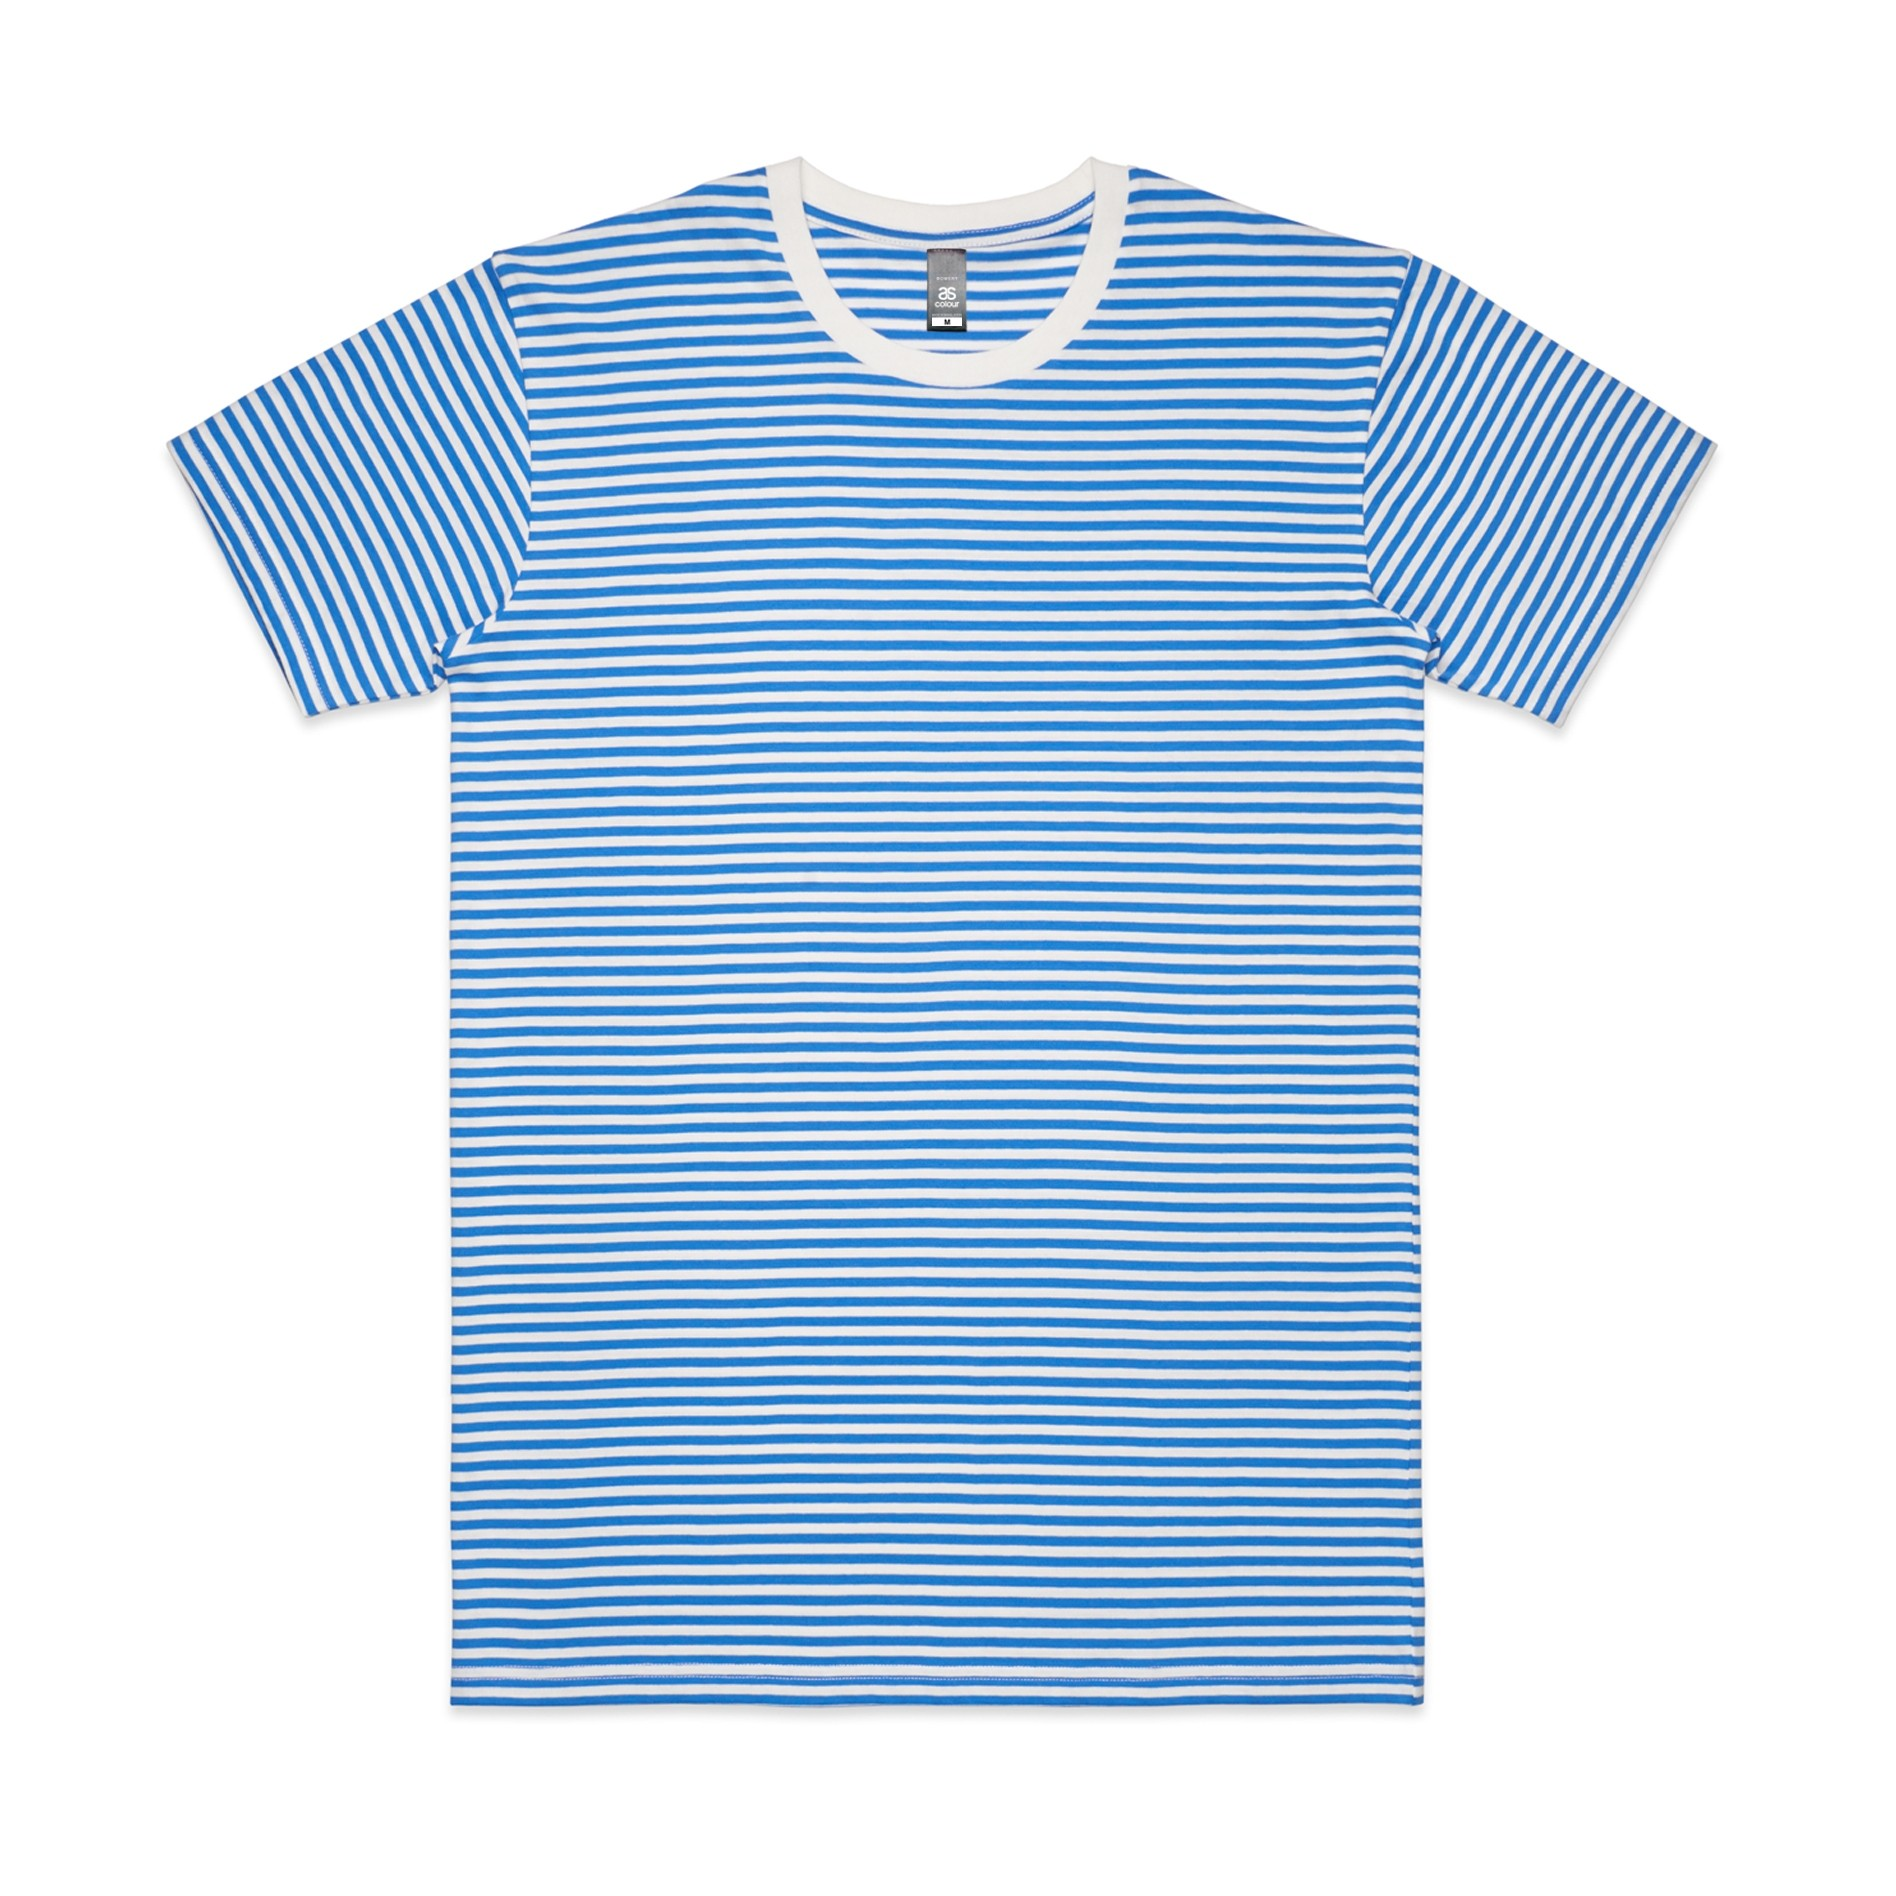 Mens Bowery Stripe Tee 5060 - Regular Fit | Crew Neck | Mid-Weight | 160 gsm | 100% Combed Cotton | Preshrunk | 3 Colours